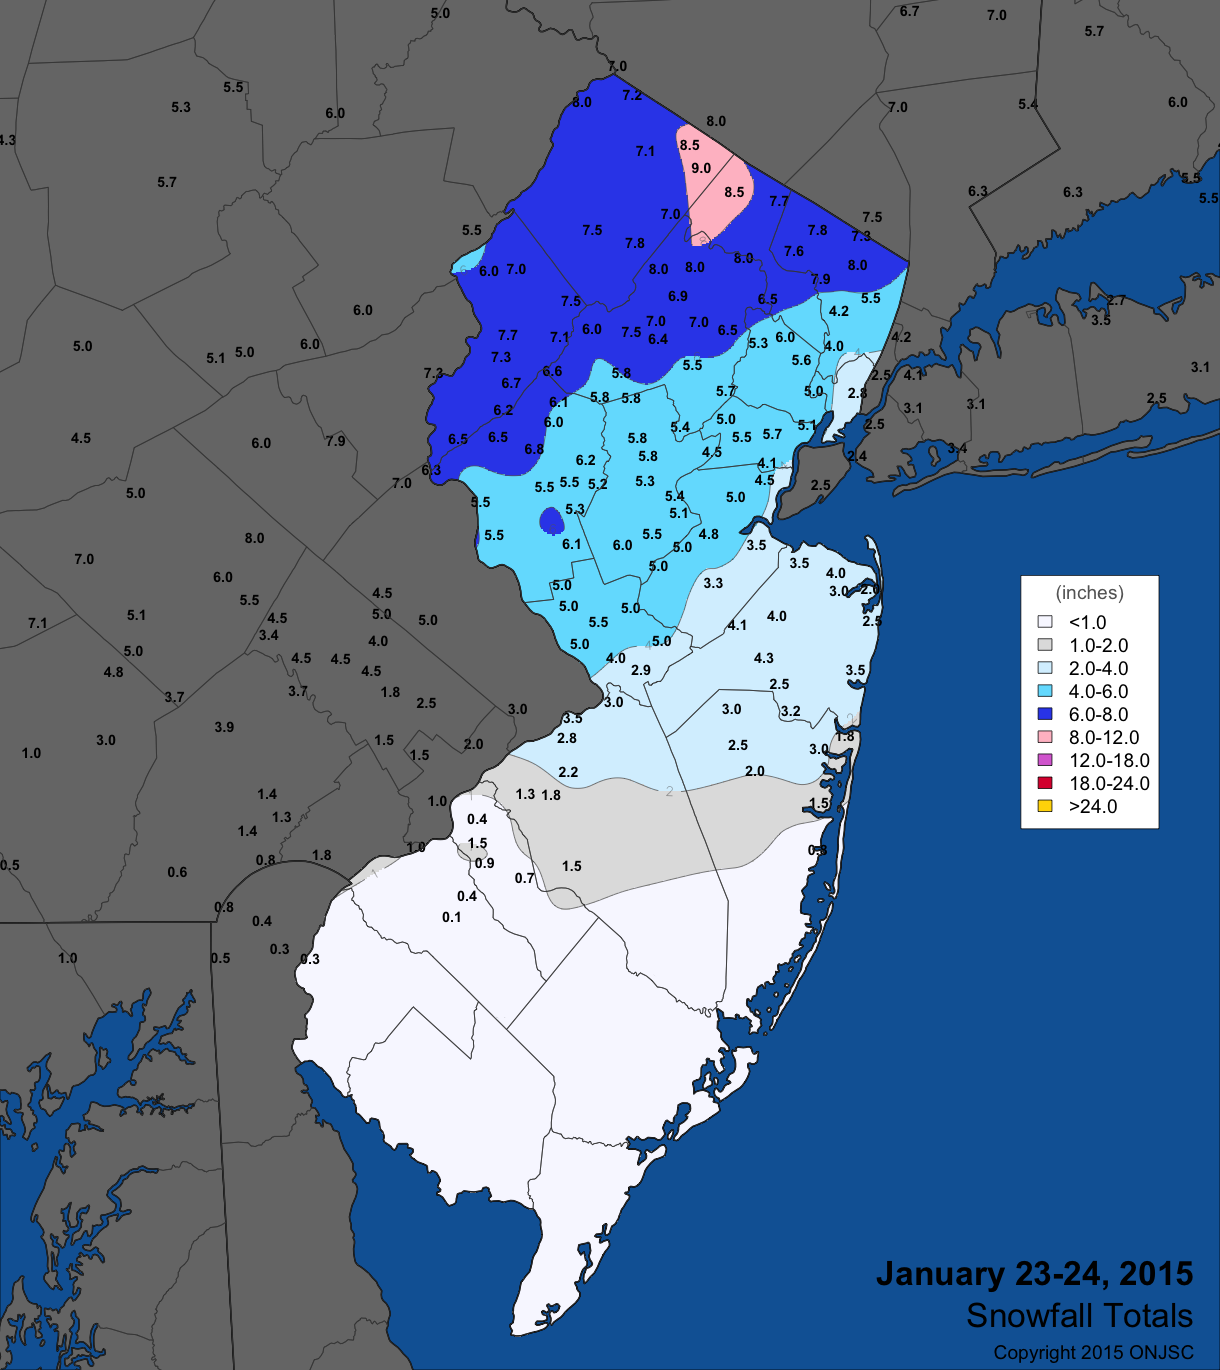 Jan 23-24 snow map